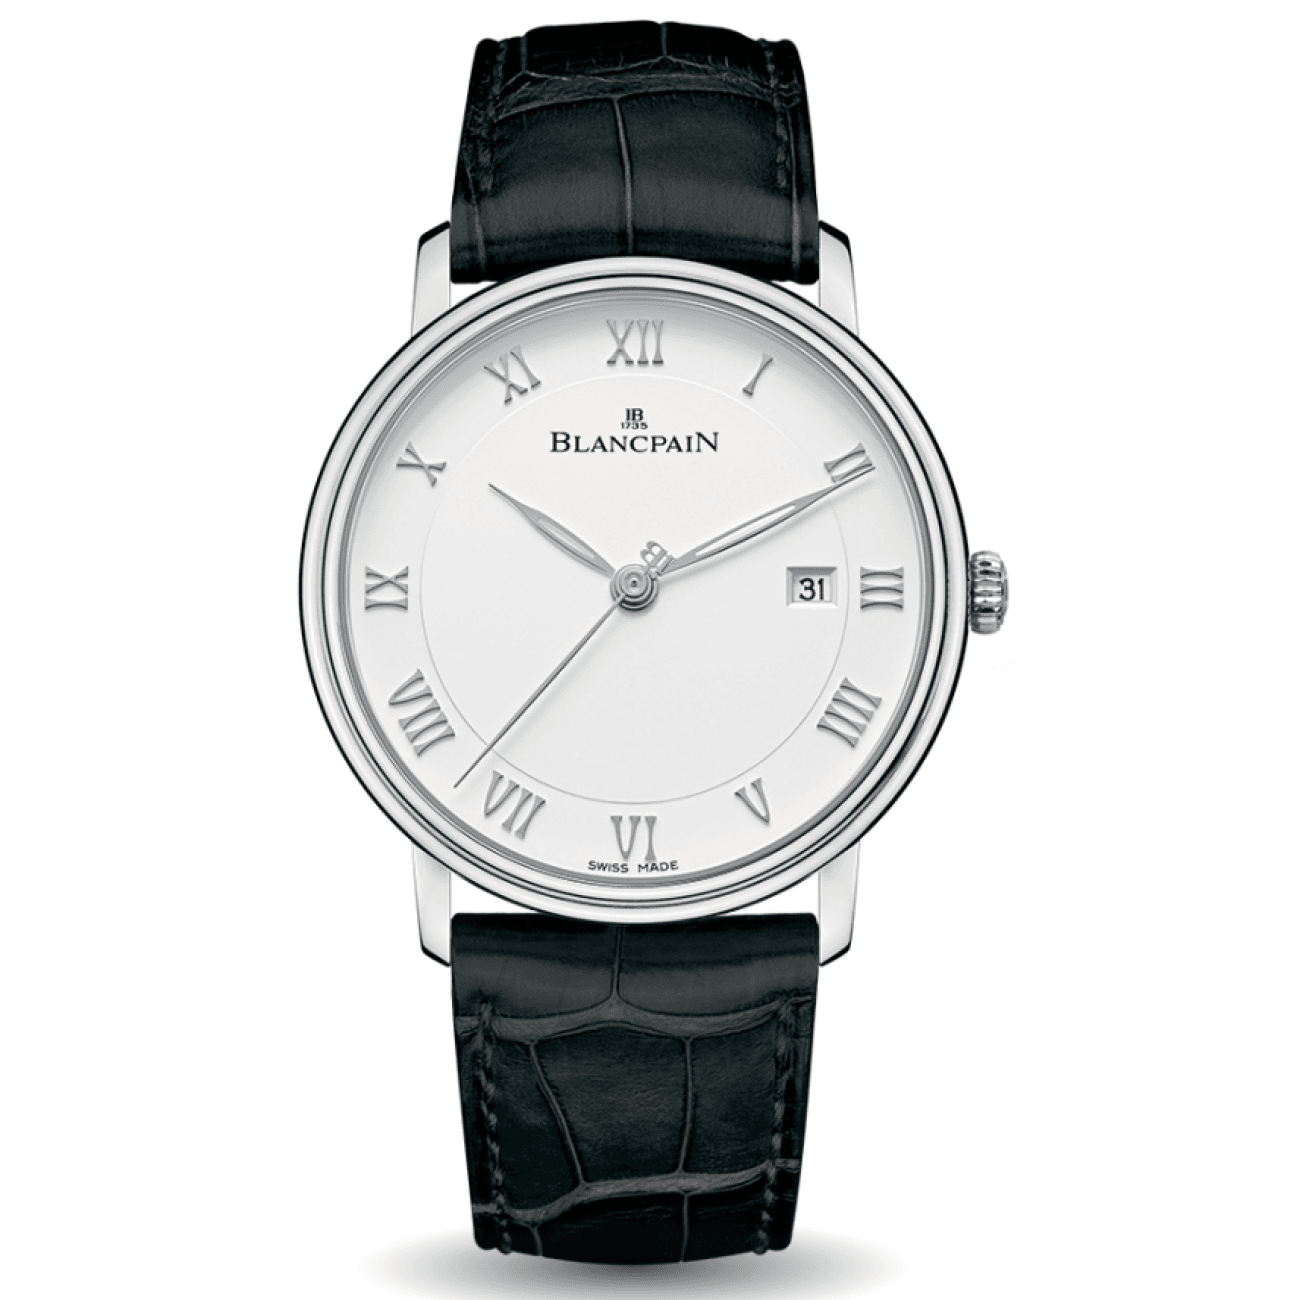 Blancpain Watches - Blancpain ULTRA- SLIM DATE WHITE DIAL | Manfredi Jewels